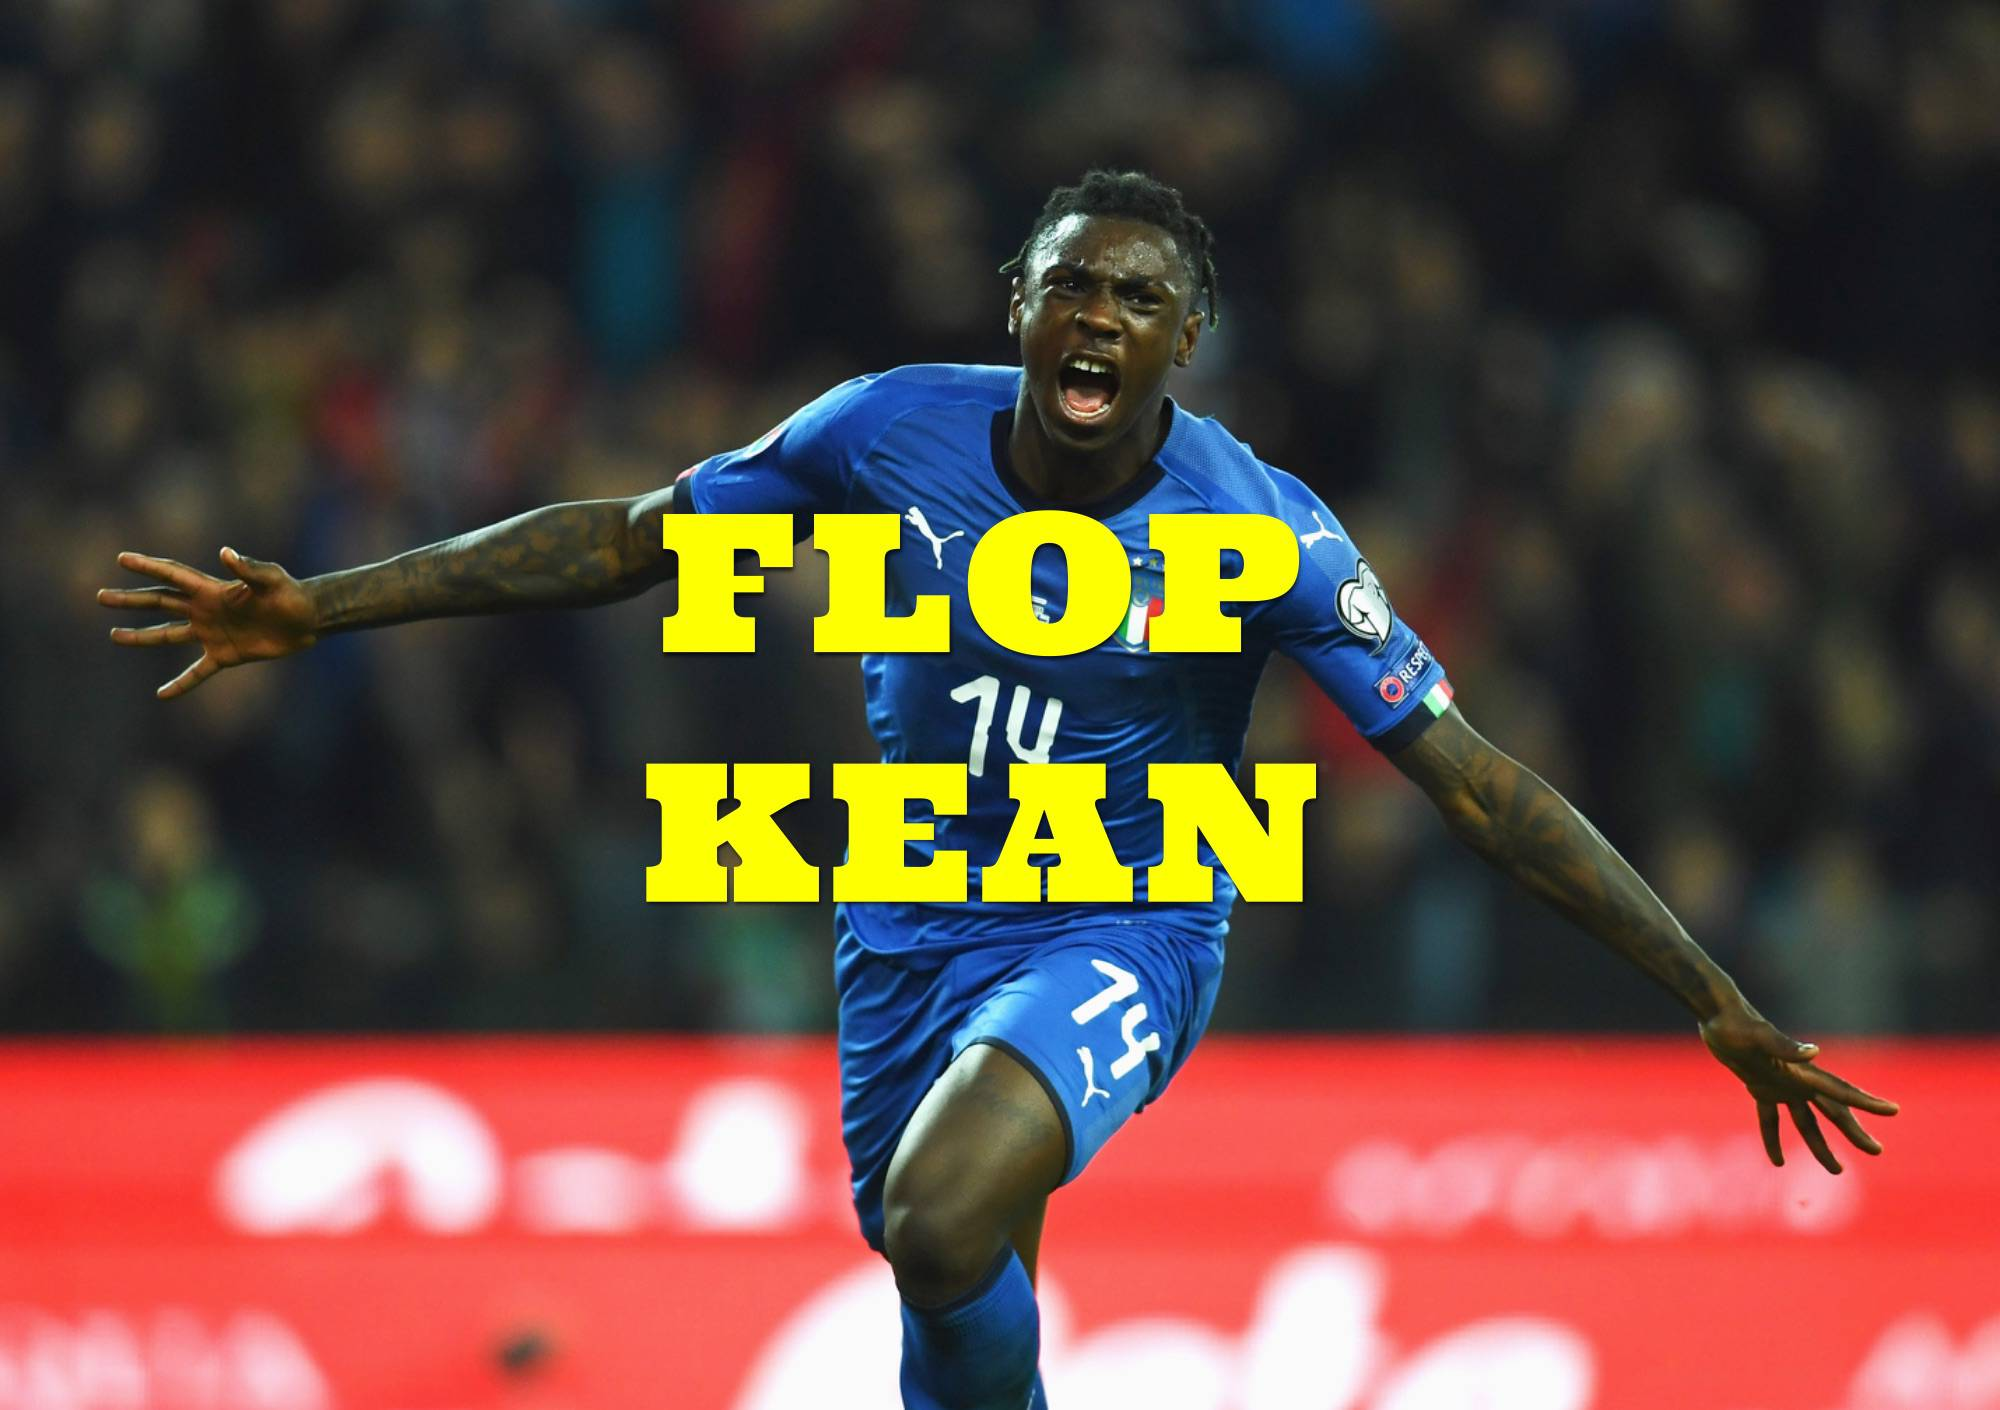 calciomercato Kean Everton Under 21